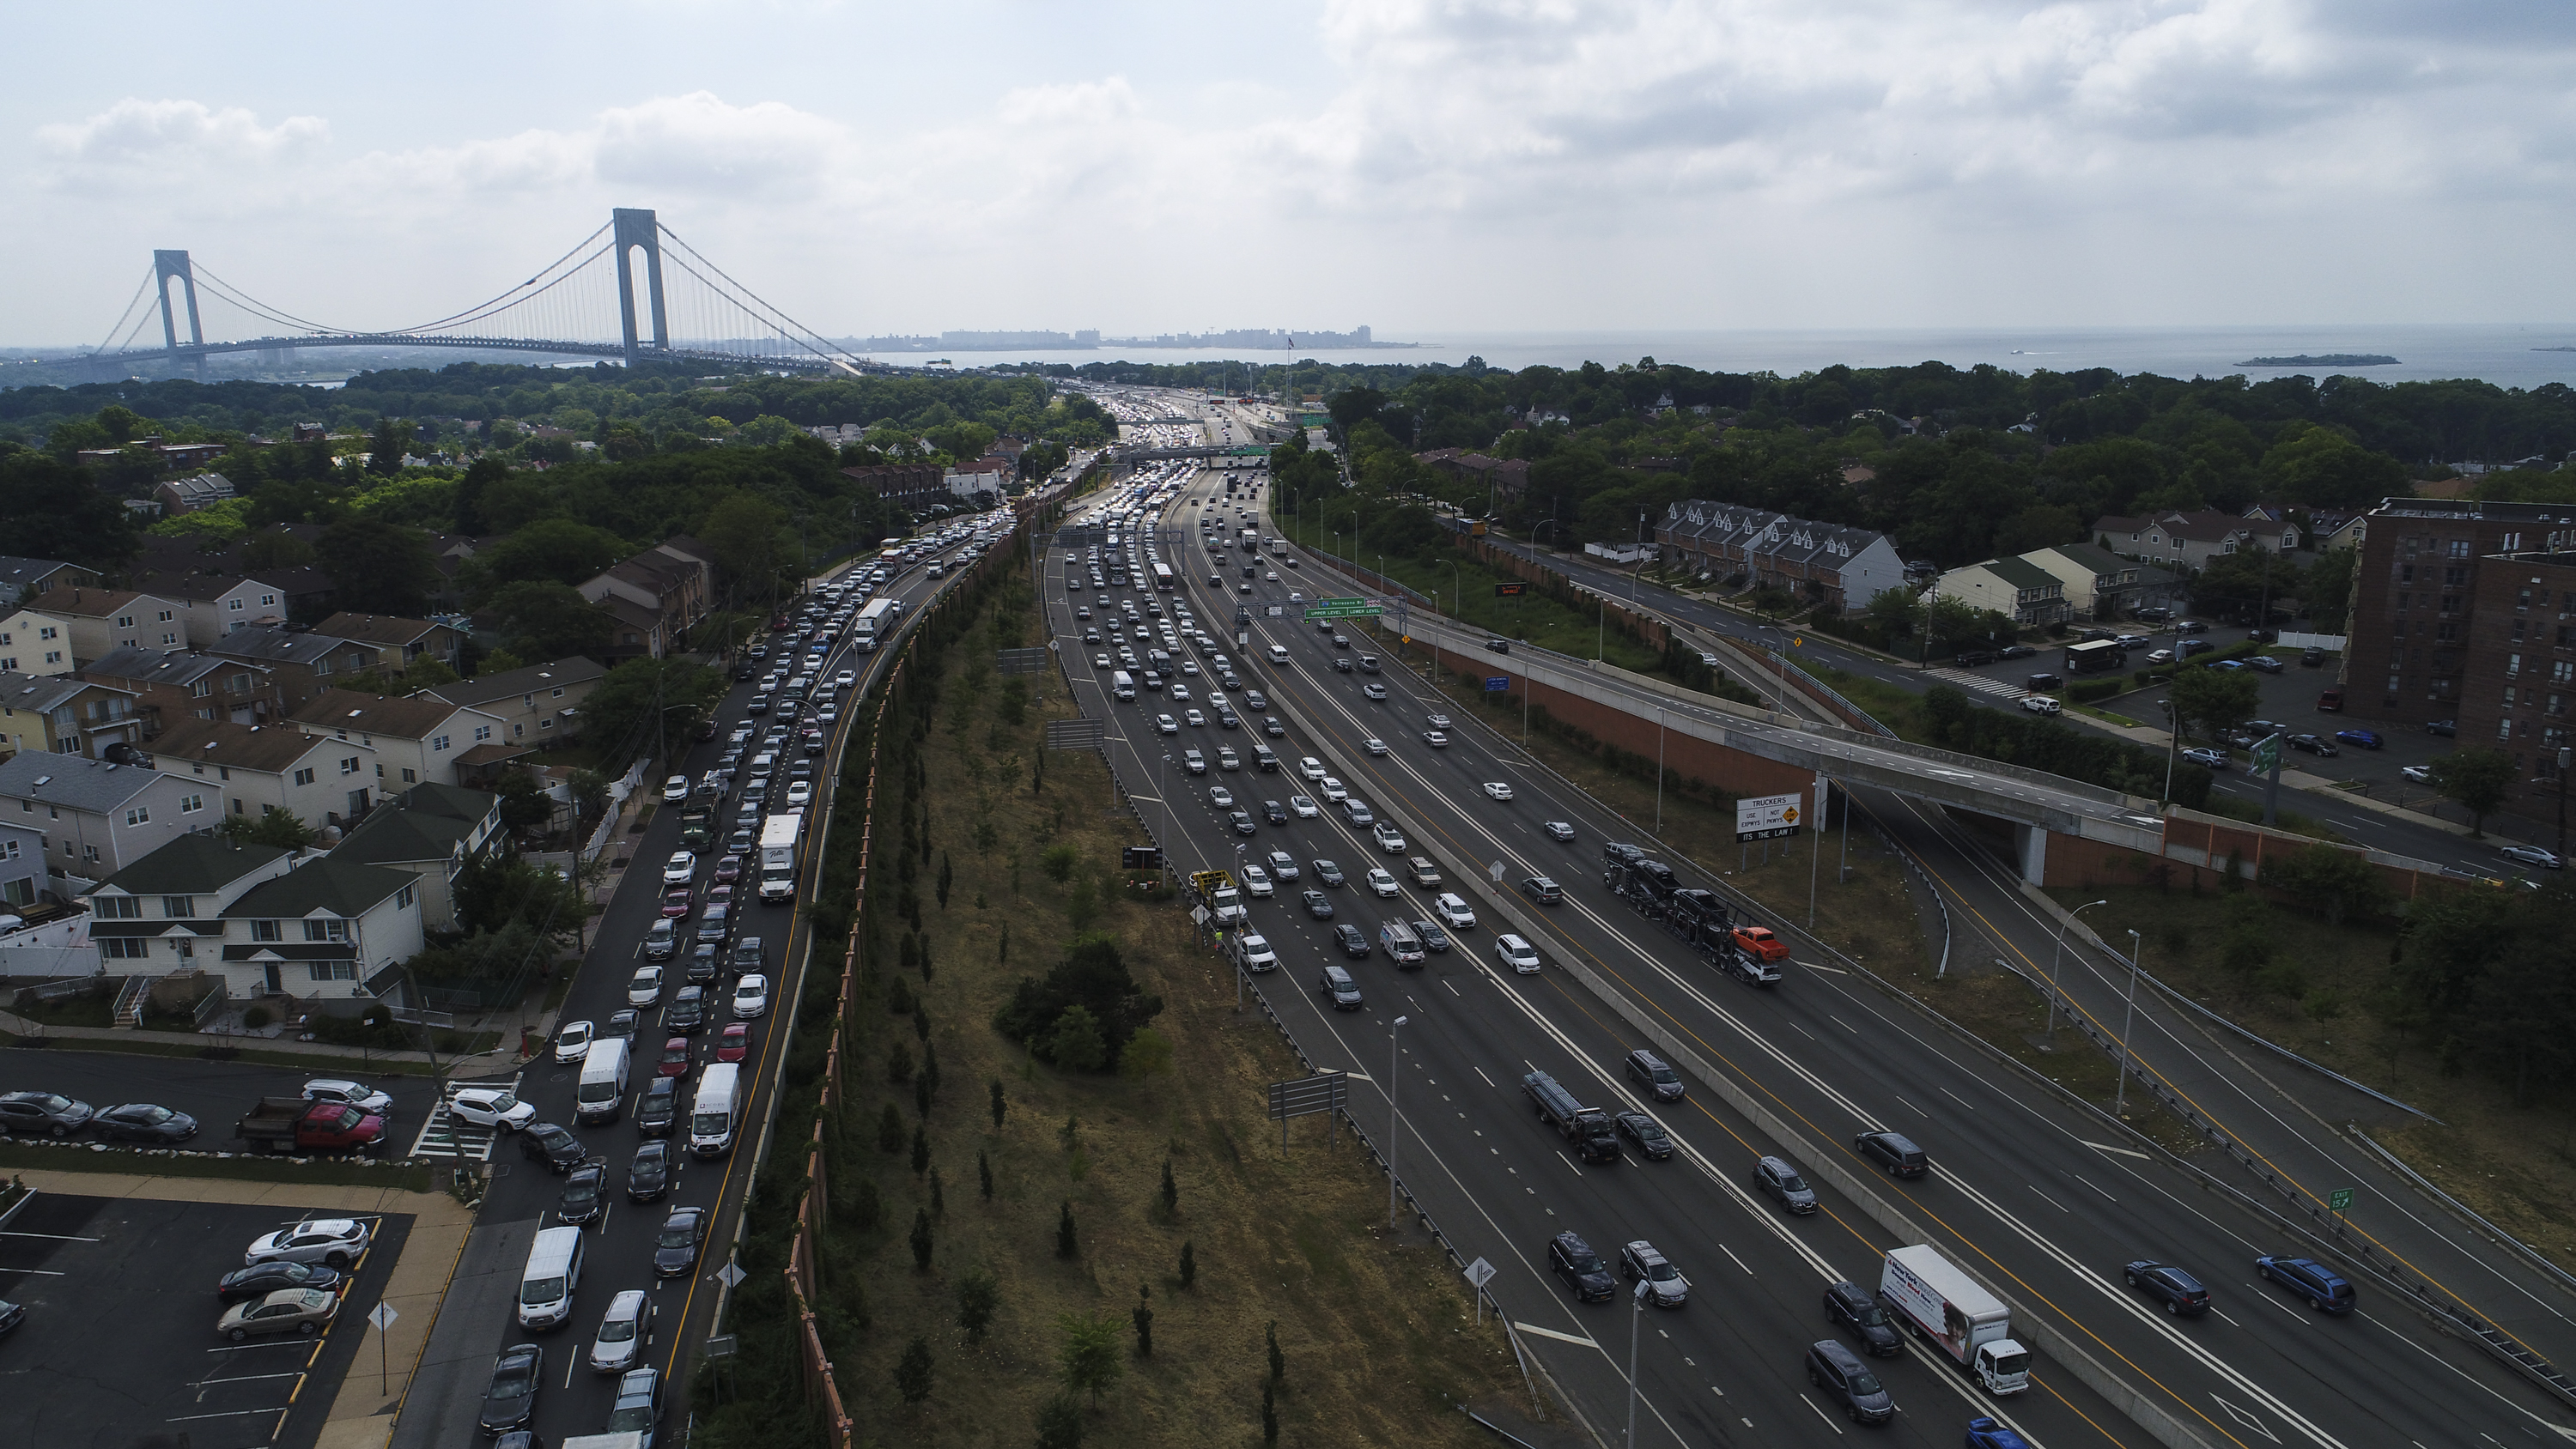 Cost of commuting extends far beyond money, report says